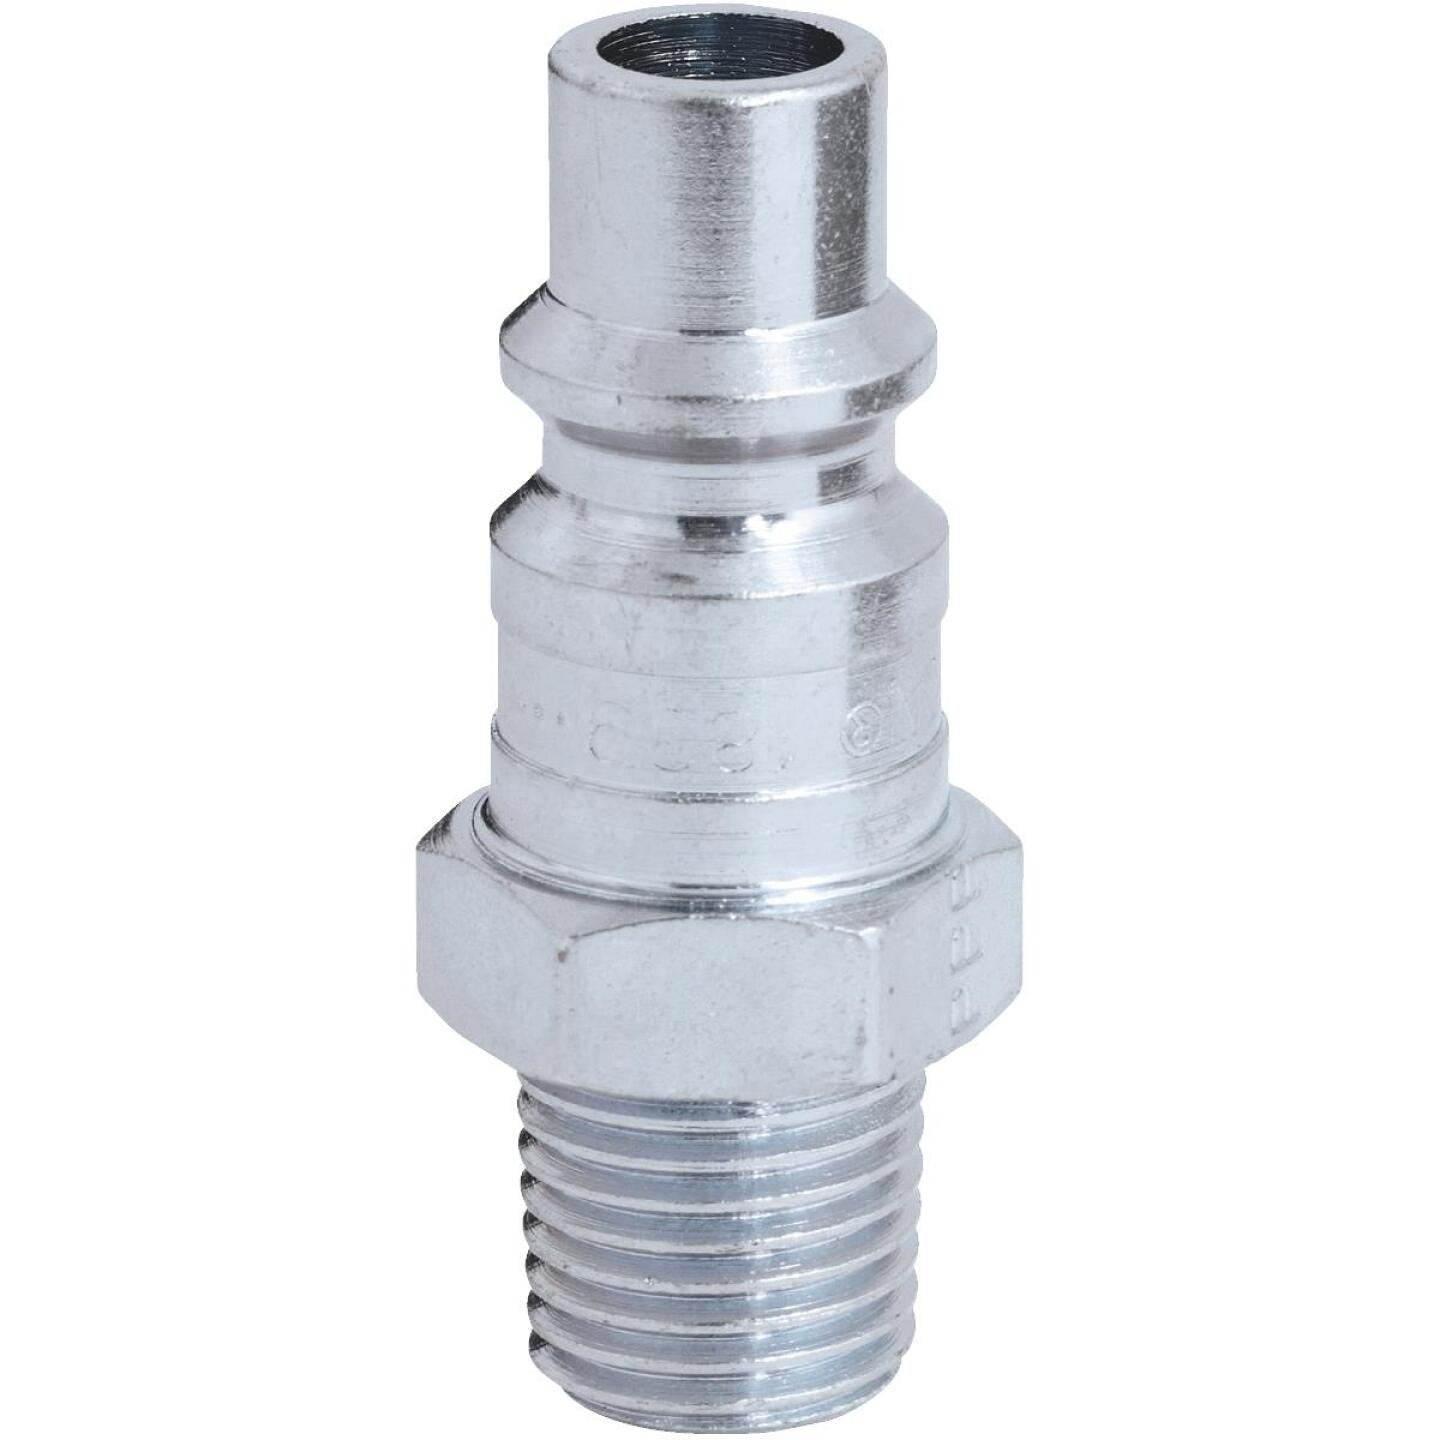 Milton 1/4 In. NPT H-Style Male Steel-Plated Plug Image 1